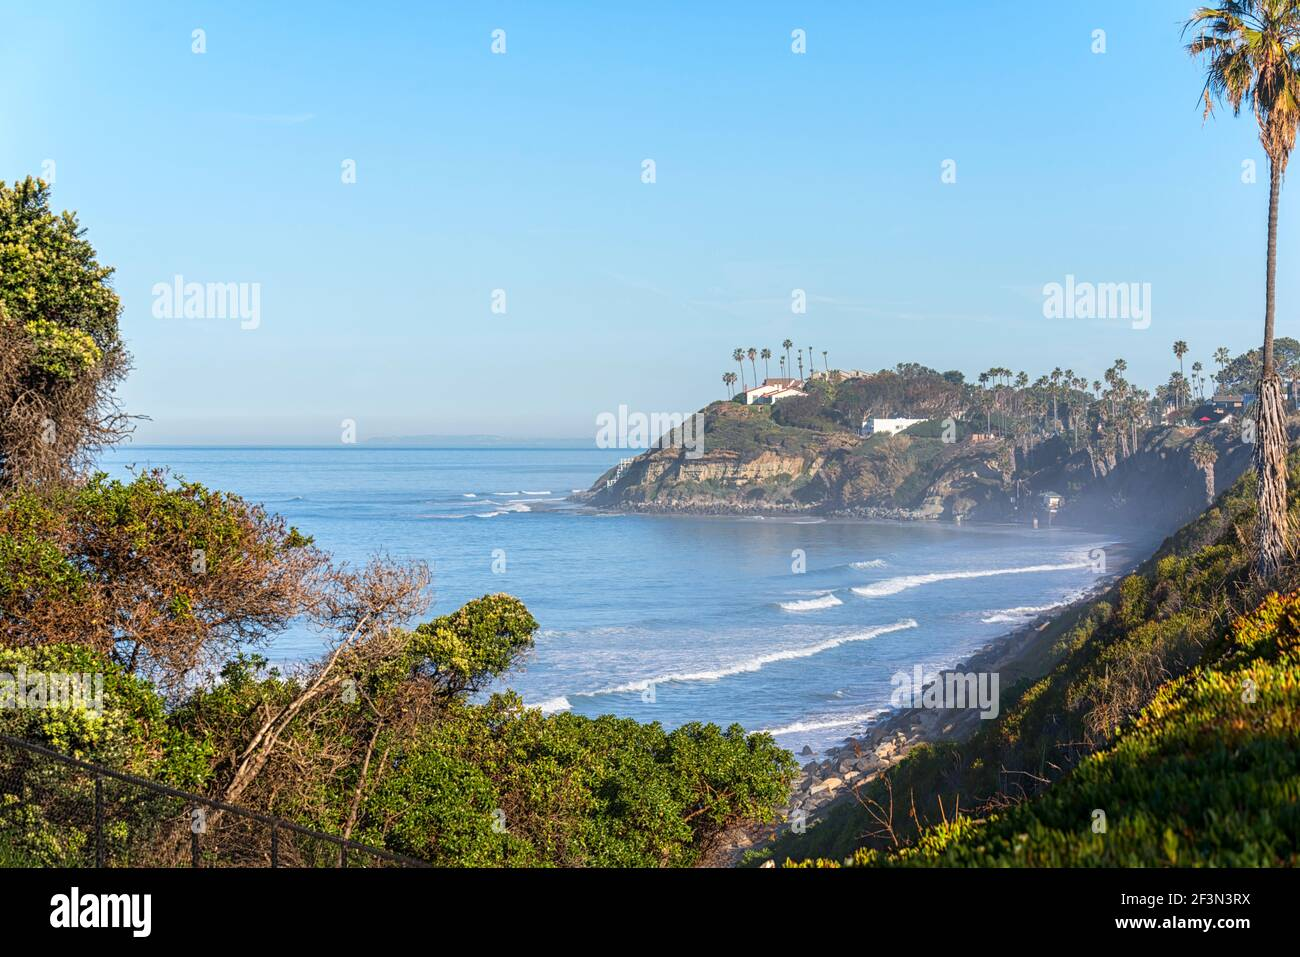 Winter morning in Encinitas, California, USA. The Self Realization Fellowship Hermitage can be seen on the bluff. Stock Photo